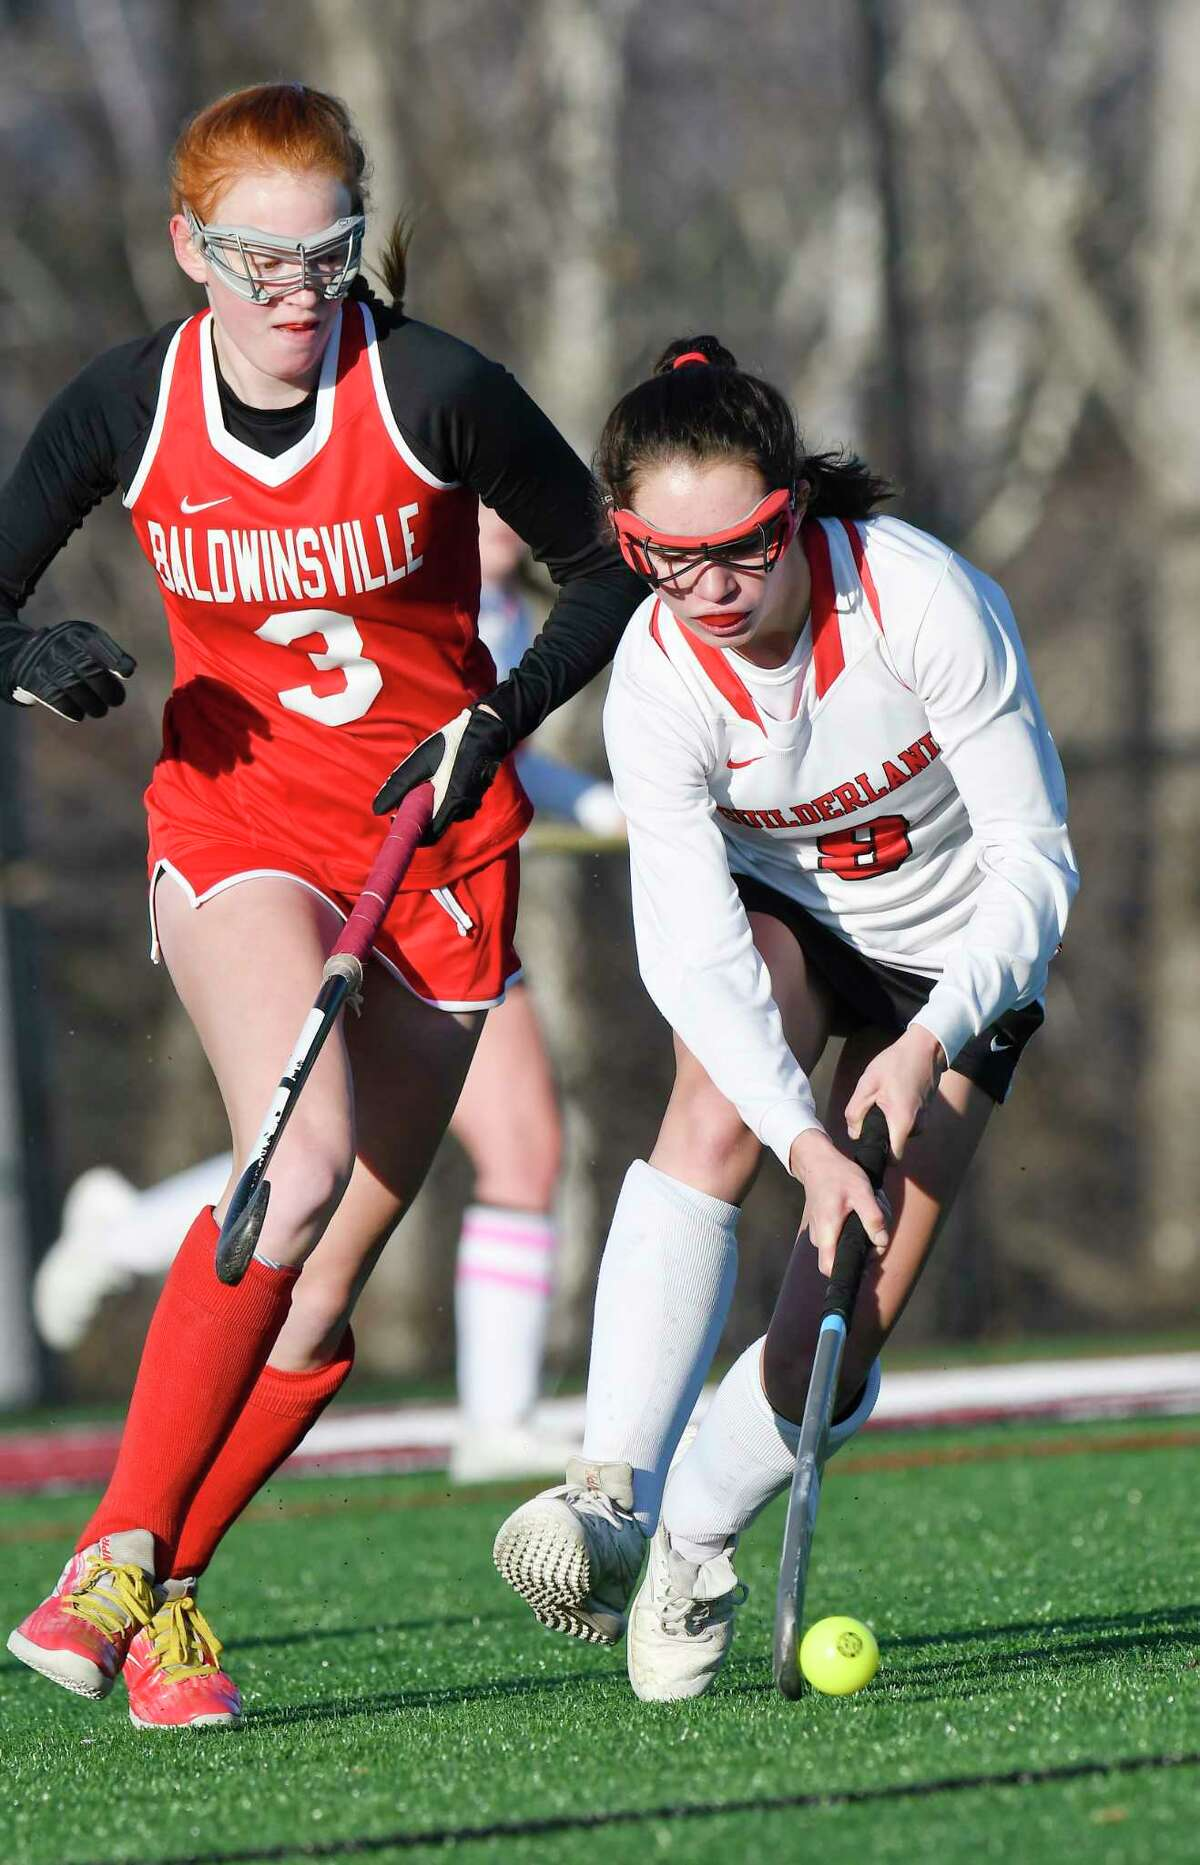 Guilderland's Chelsea King (9) moves the ball in front of Baldwinsville's Sydney Huhtala (3) during a Class A state high school regional semi final field hockey game Wednesday, November 6, 2019, in Gloversville, N.Y. (Hans Pennink / Special to the Times Union) ORG XMIT: 110719_hsfh1_HP102